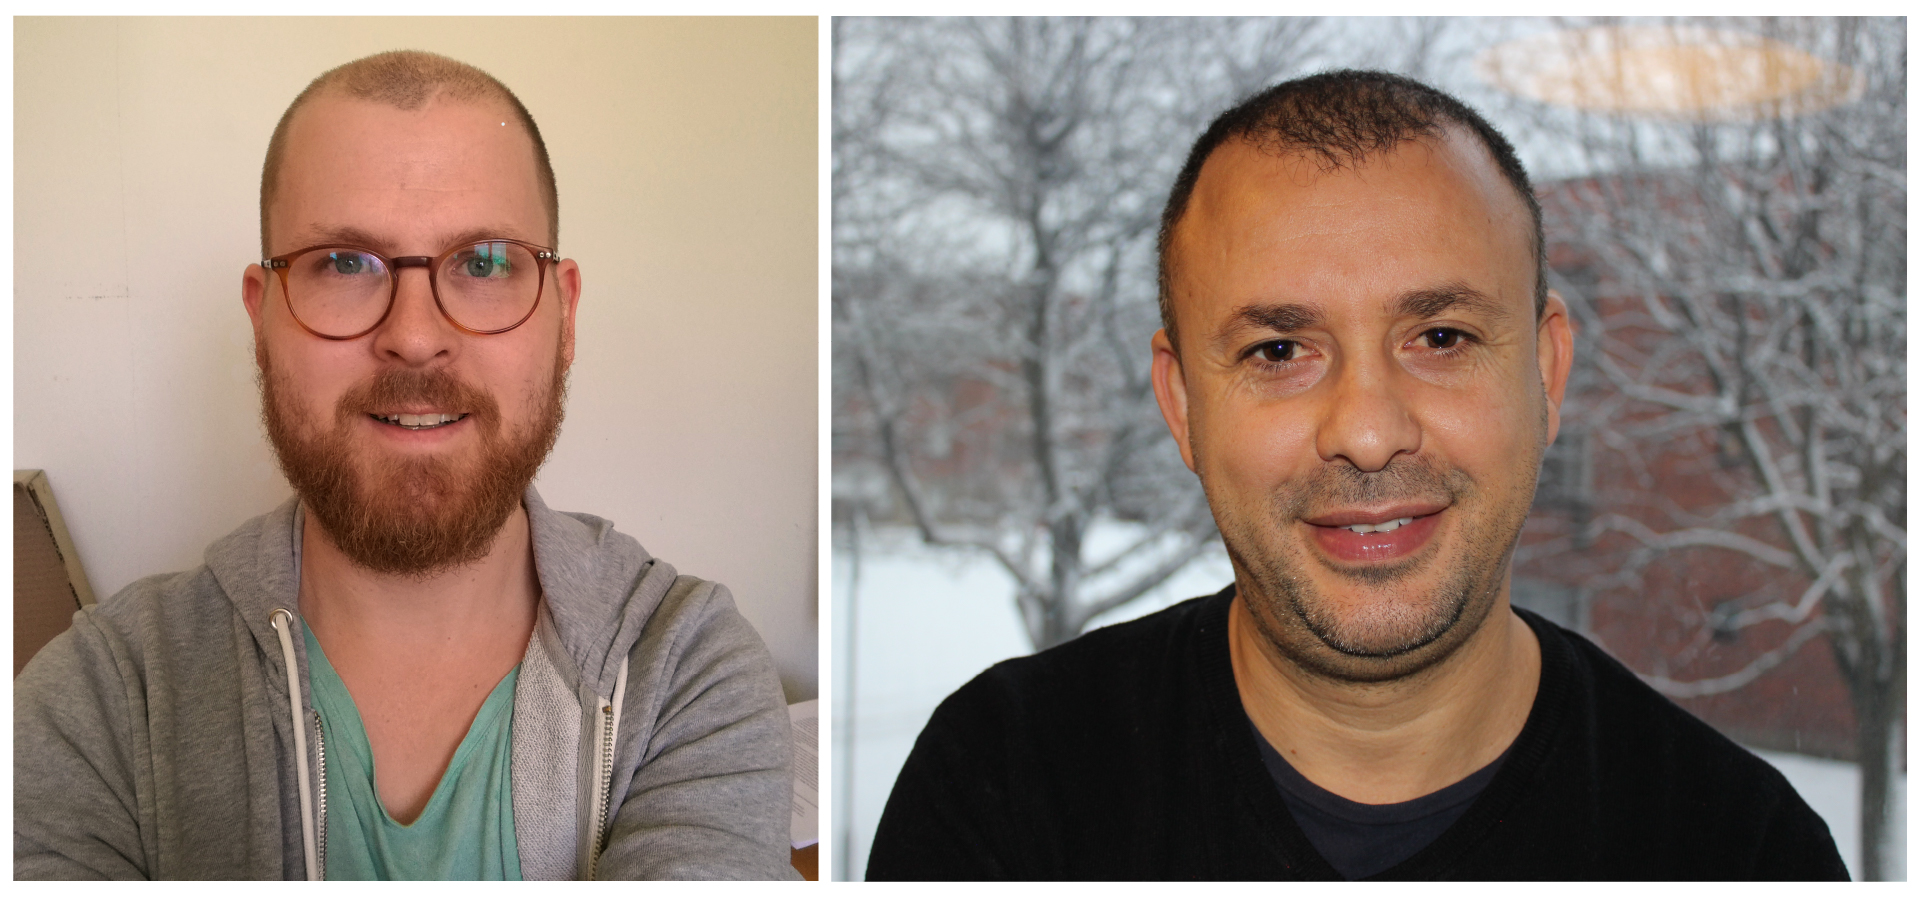 Kristoffer Jonsson (left) and Abdellah Lakehal (right)